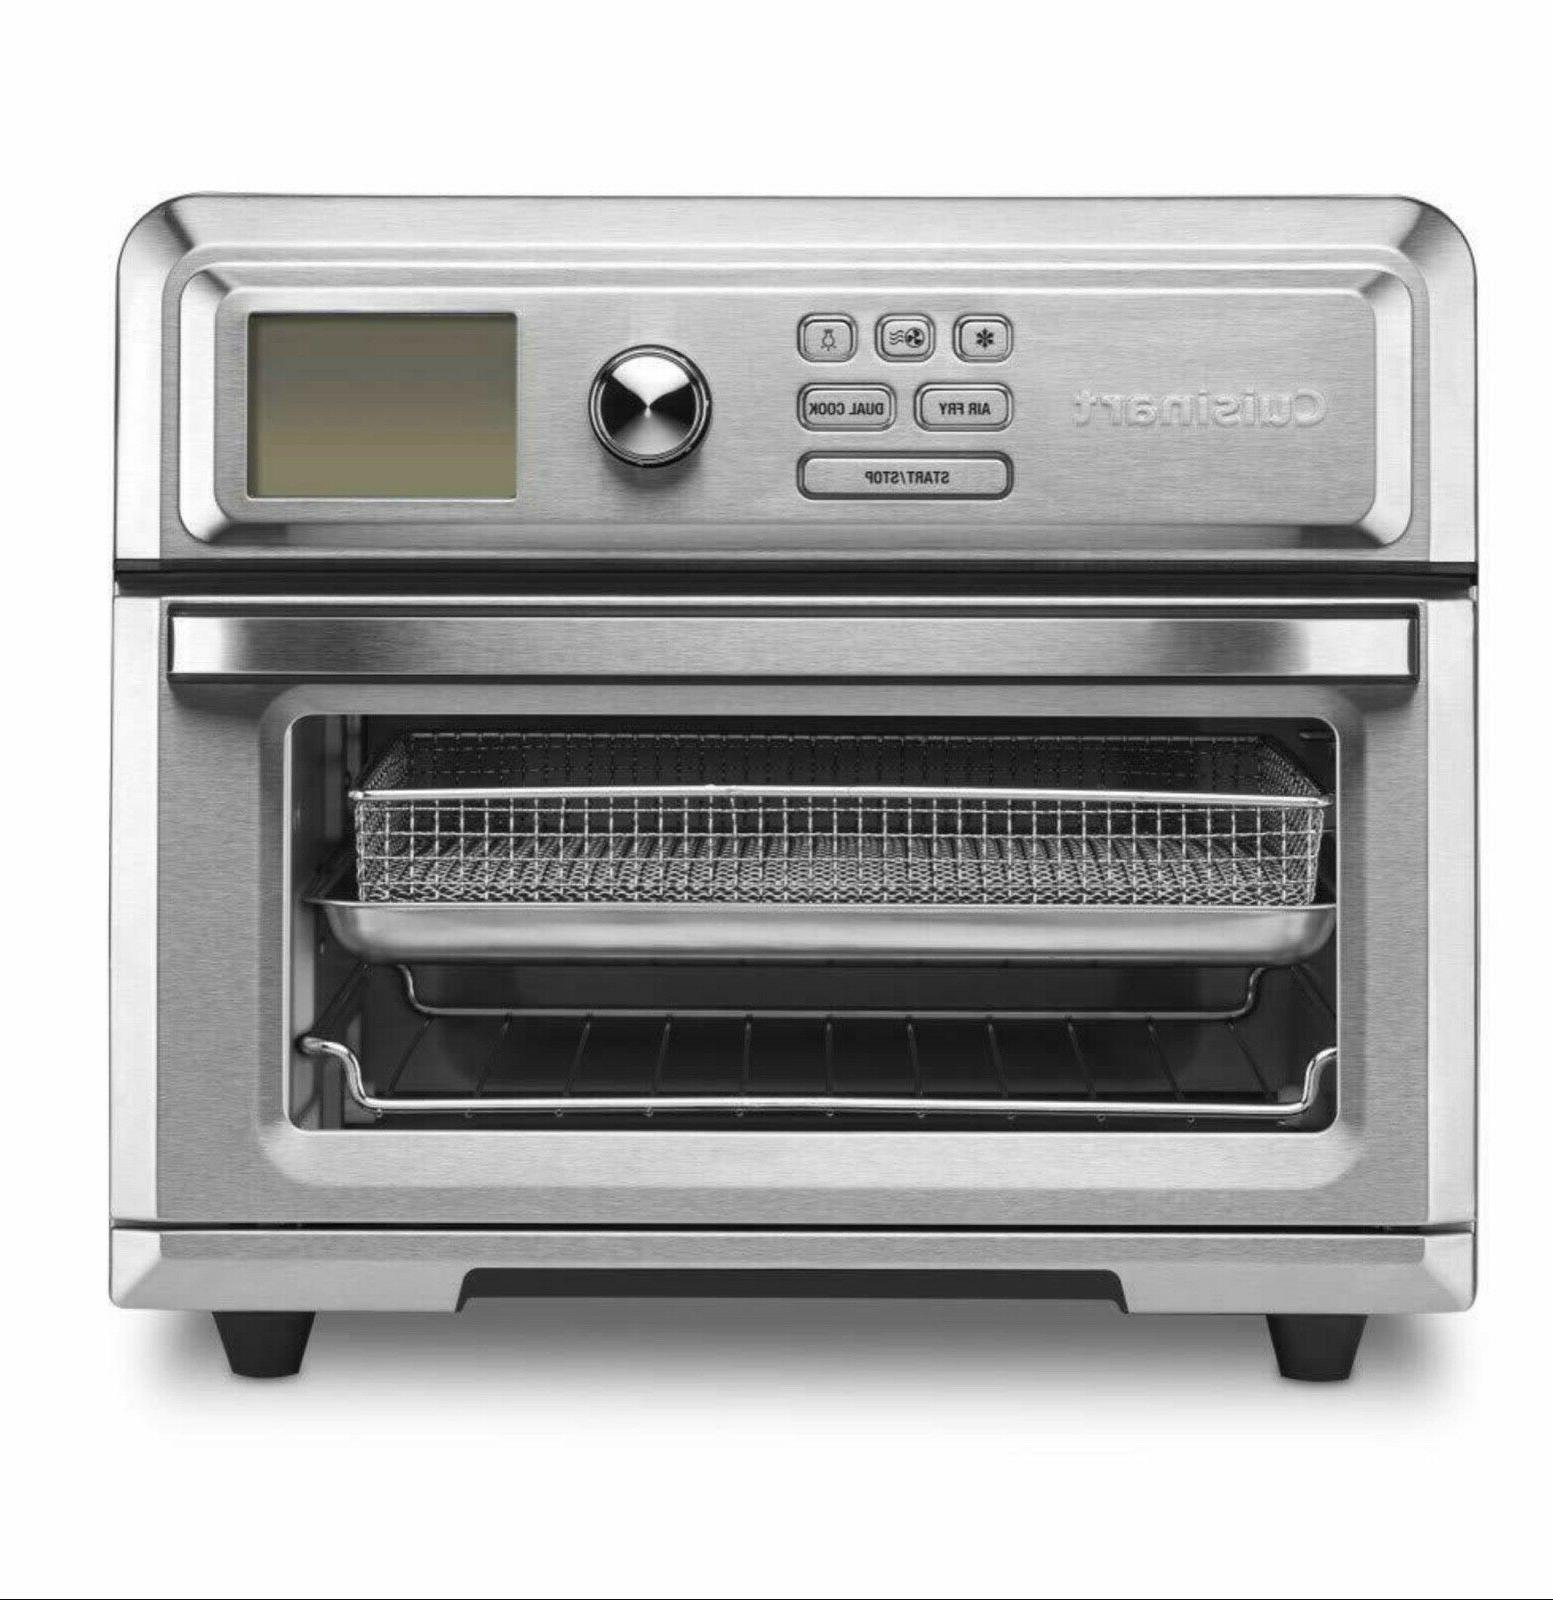 toa 65 digital airfryer toaster oven silver